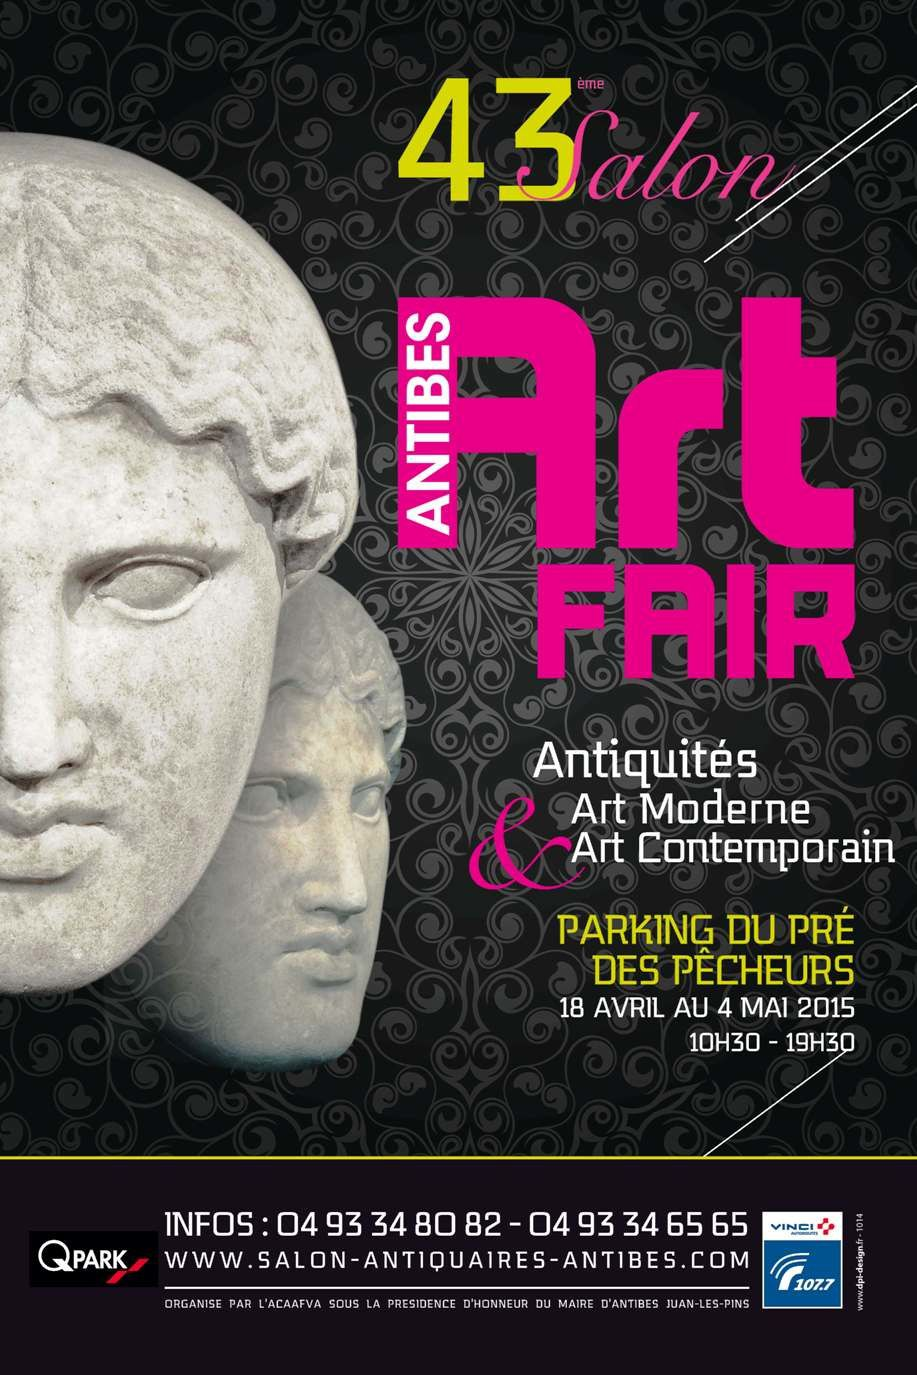 ANTIBES ART FAIR : Du 18 avril au 4 mai 2015  43ème Salon d'Antiquités, d'Art Moderne et d'Art Contemporain d'Antibes